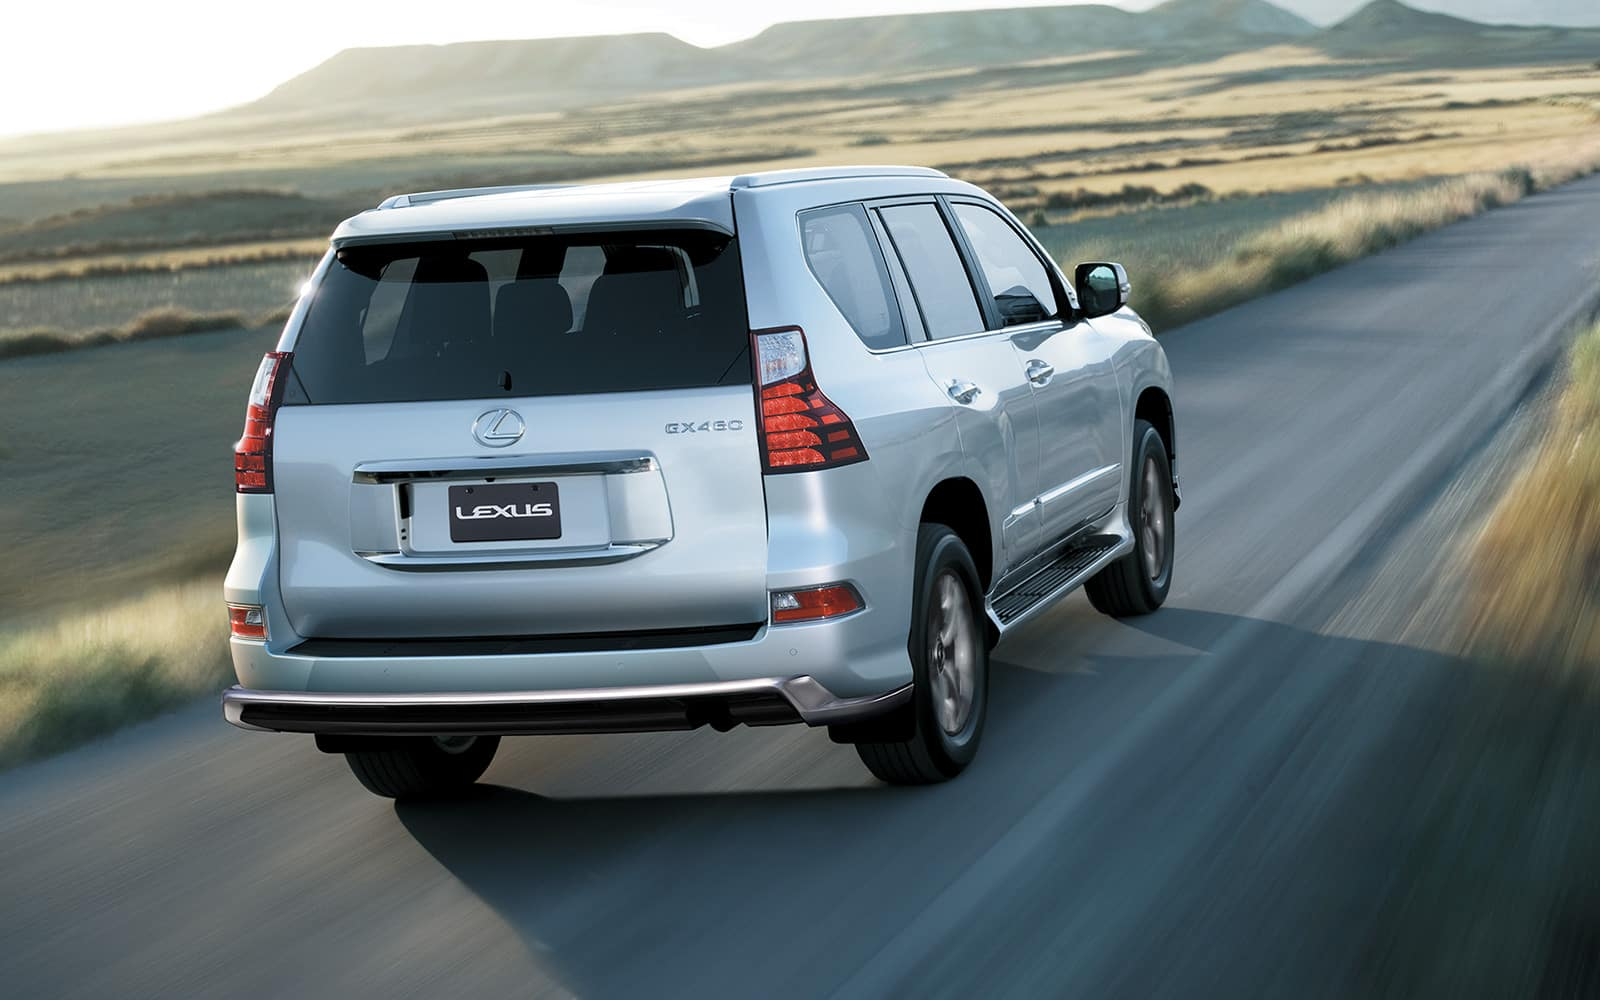 2011 lexus gx 460 maintenance schedule